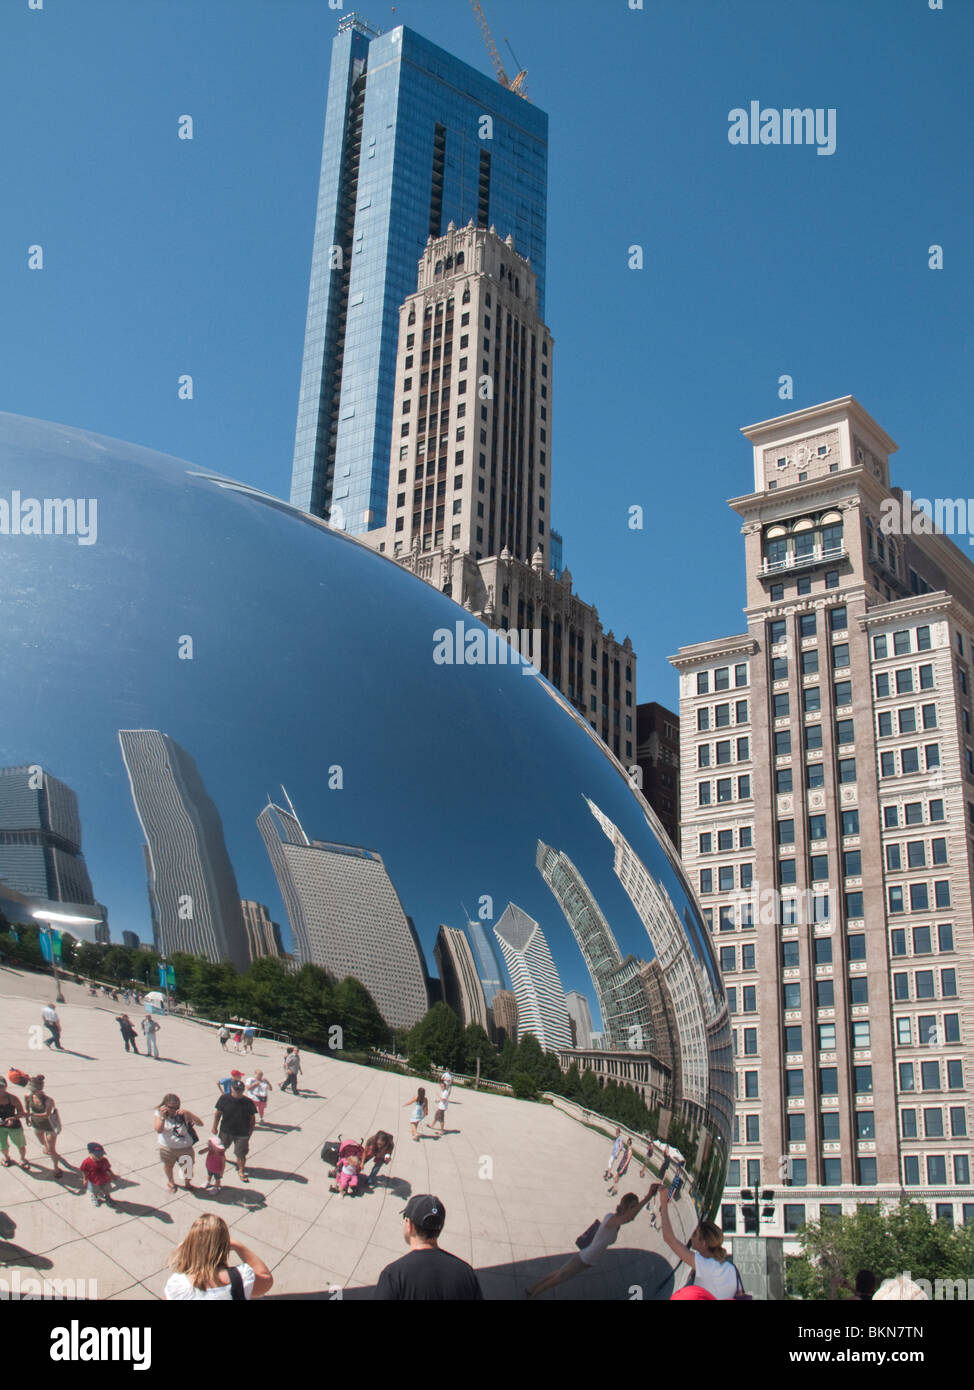 Anish Kapoor's Cloud Gate sculpture on AT&T Plaza in Millennium Park, Chicago - Stock Image